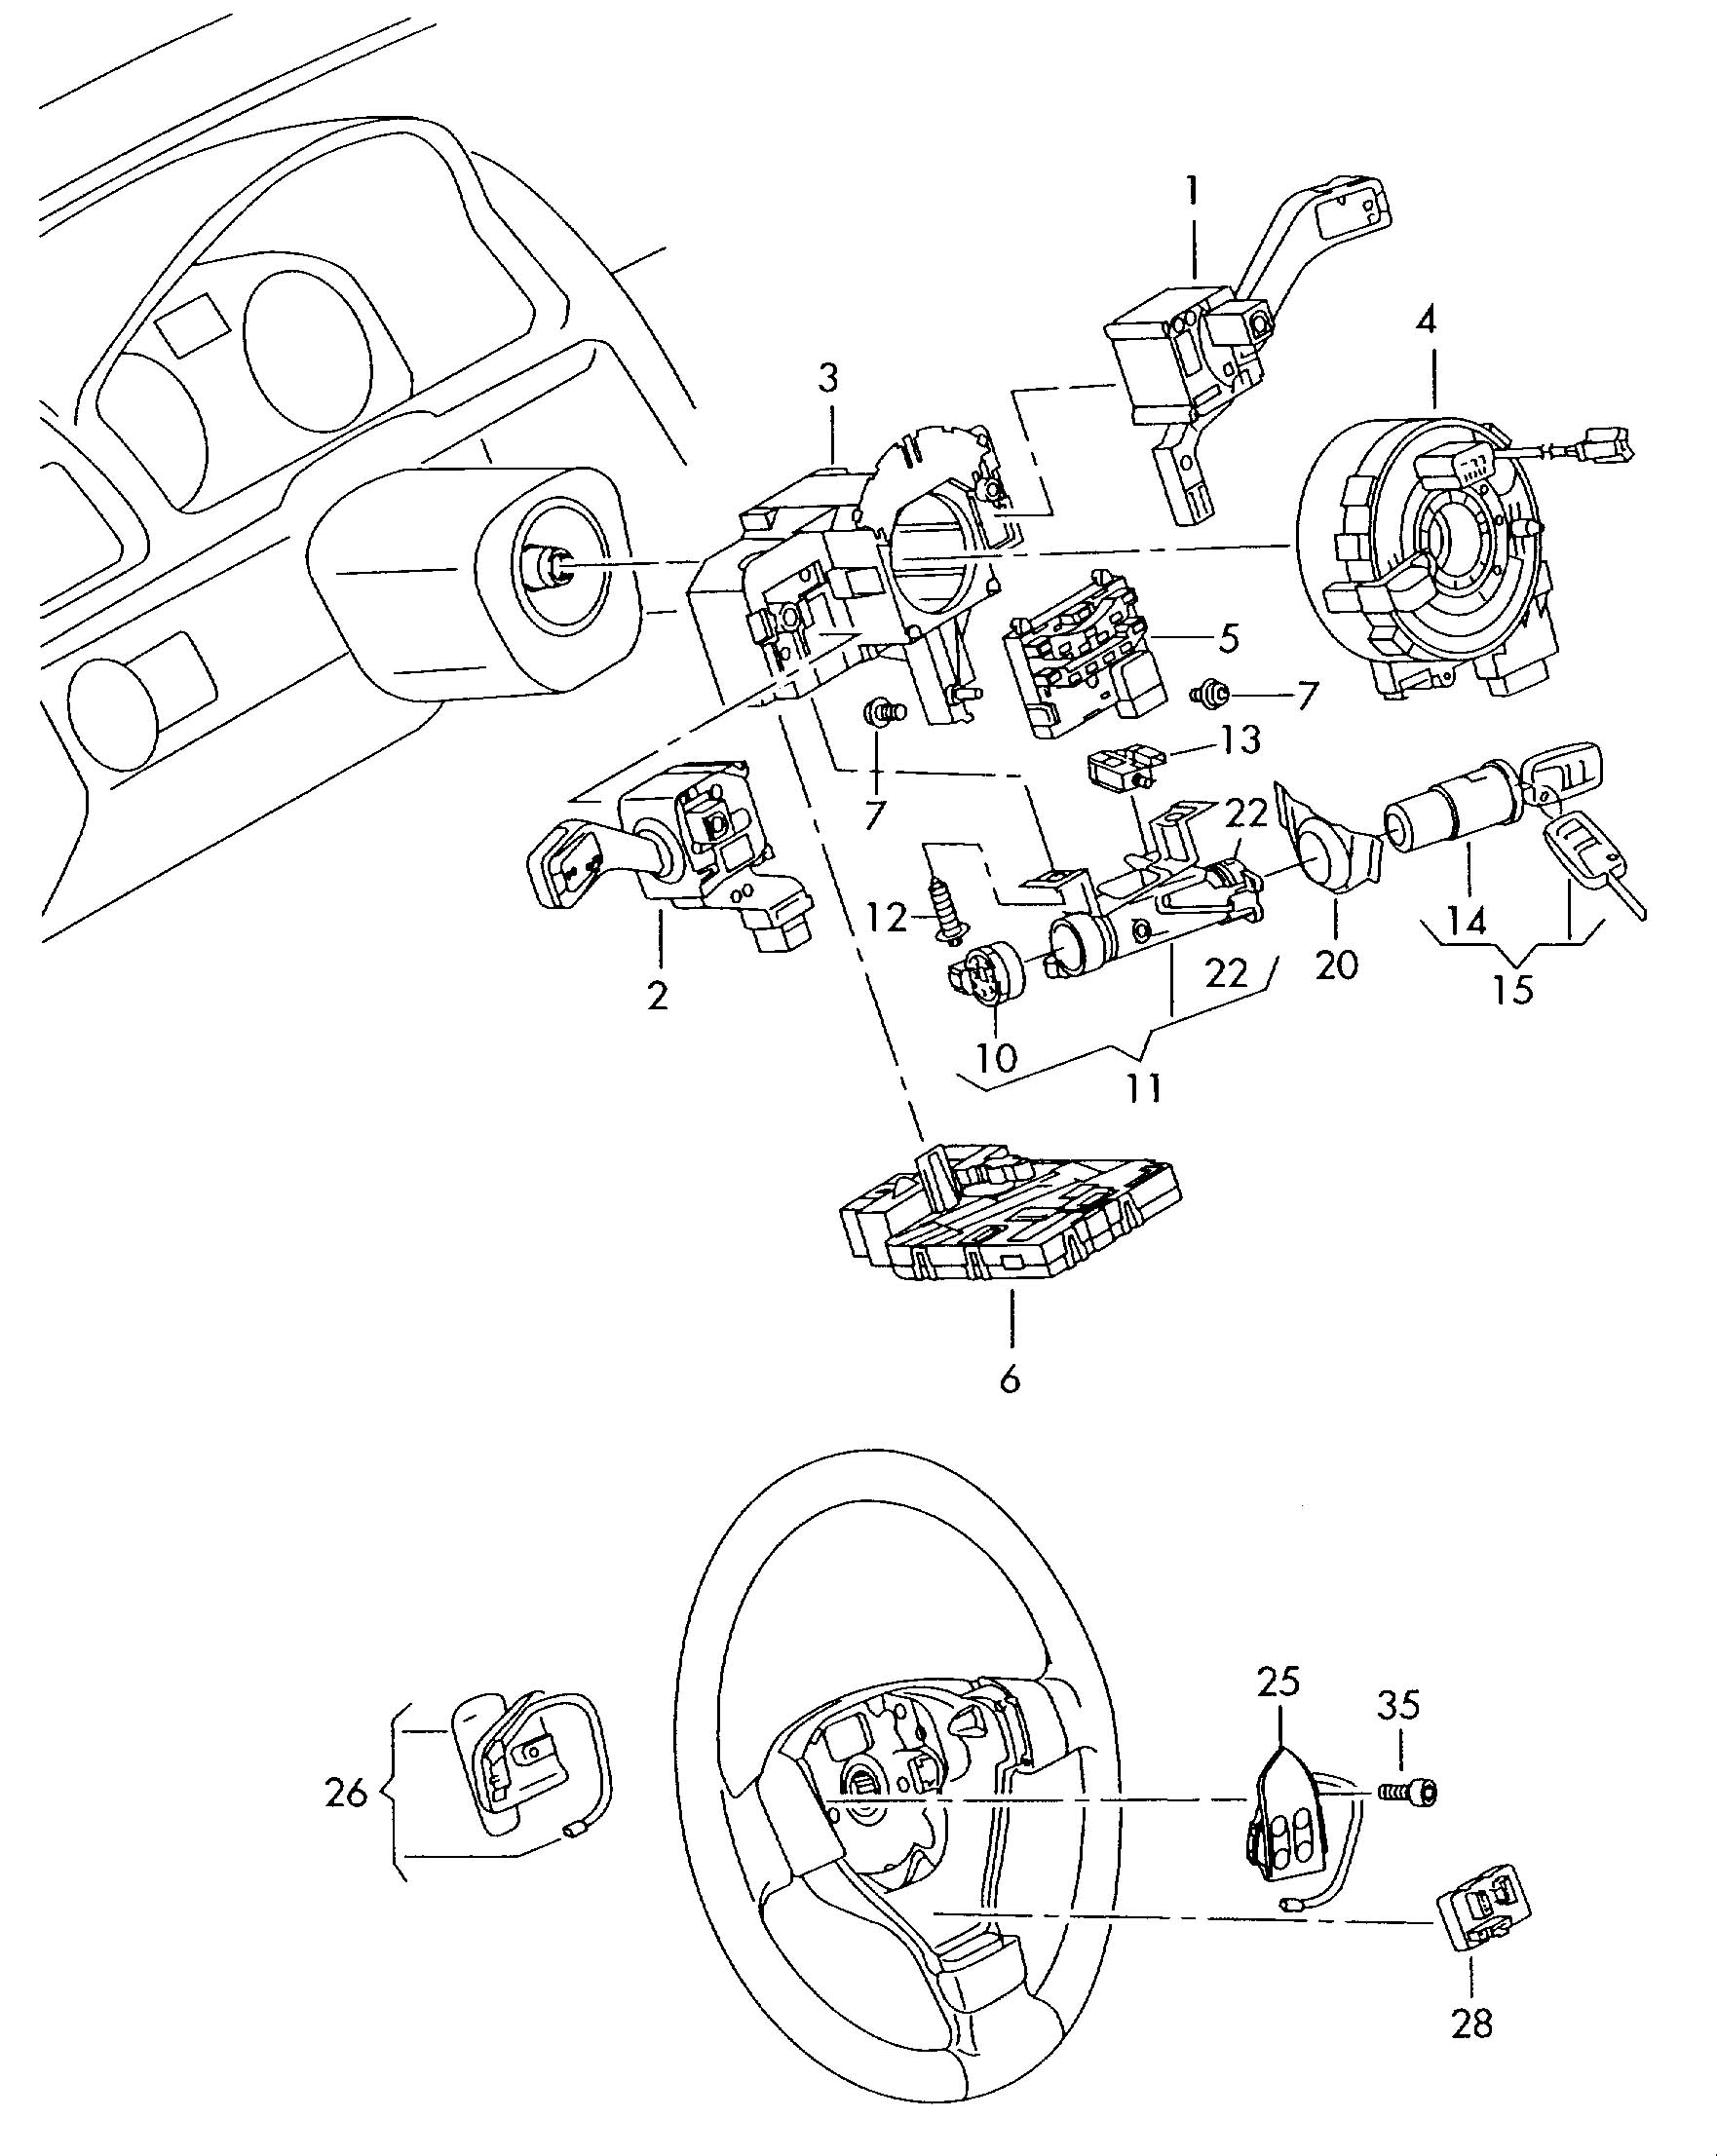 Volkswagen Tiguan Steering Column Lock With Ignition